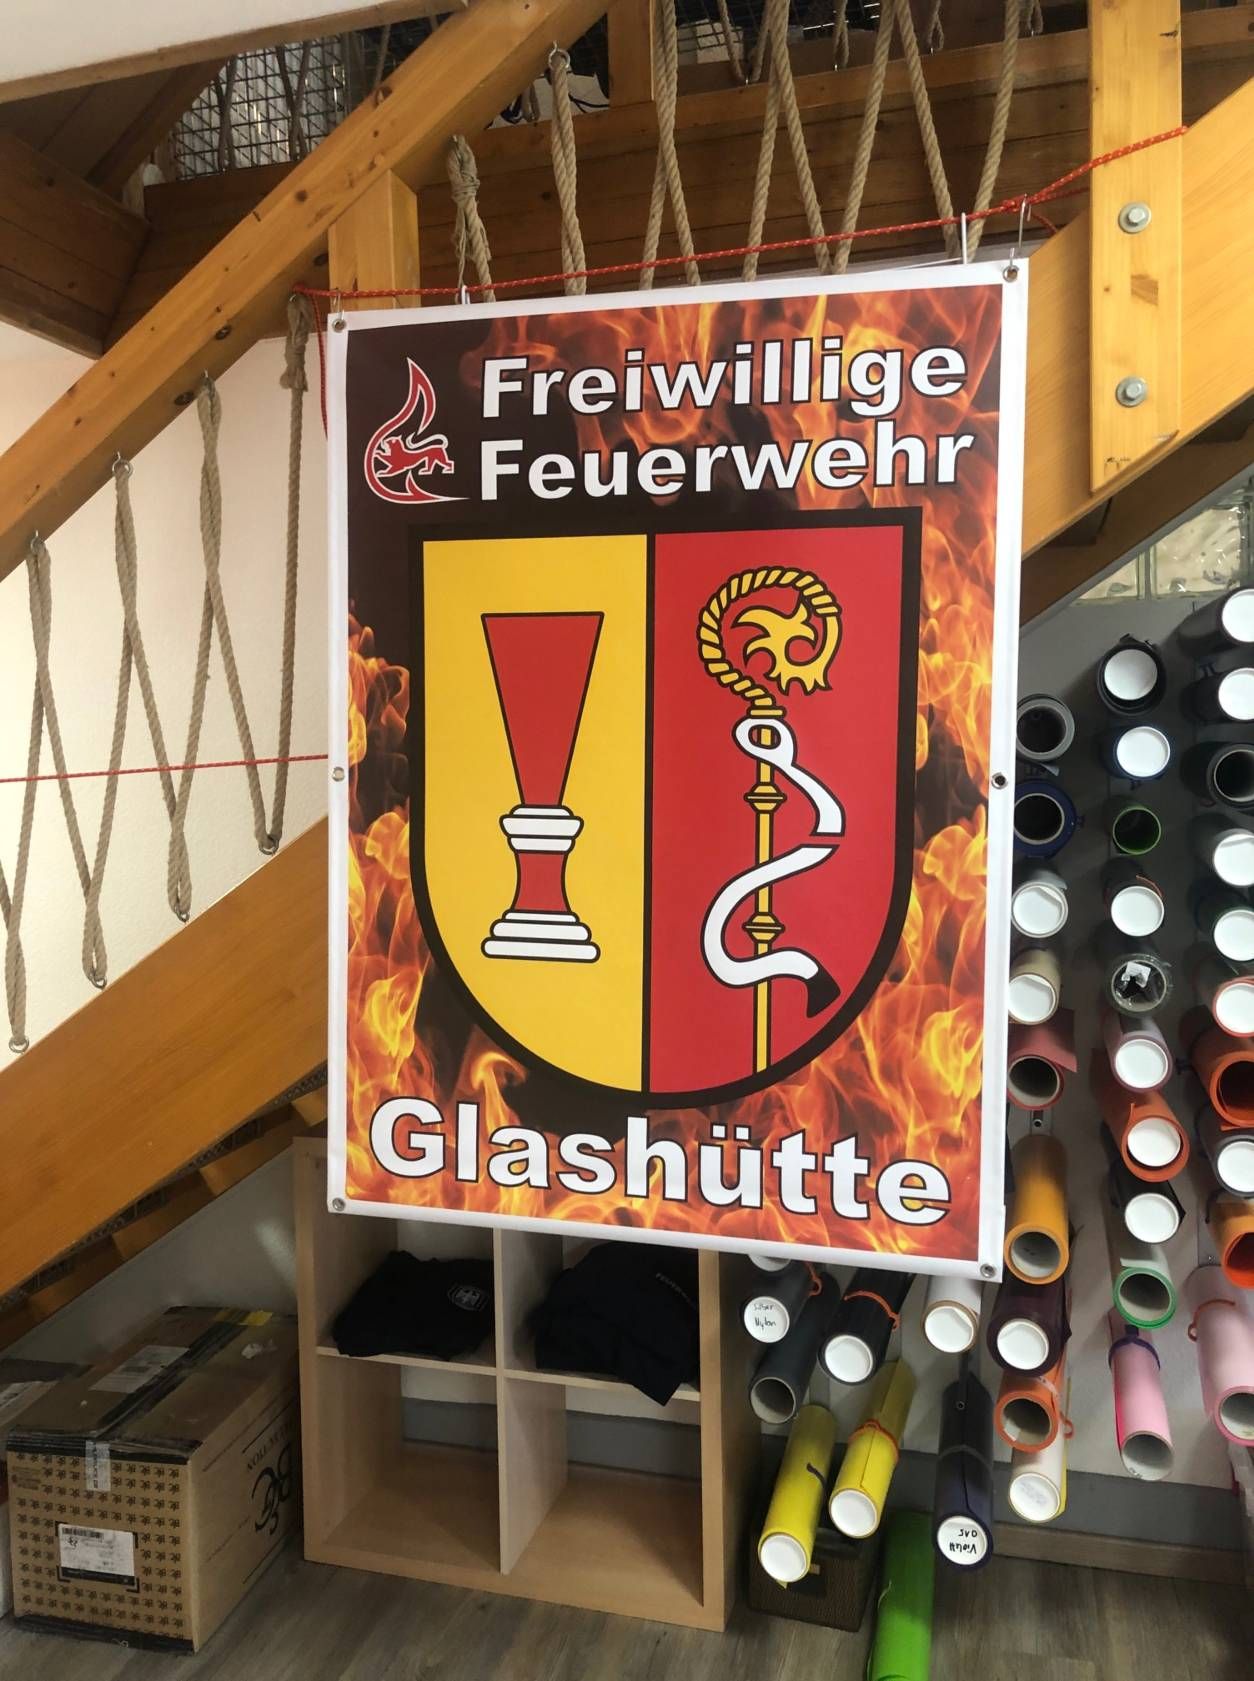 Glashütte  by Sauter Textildruck